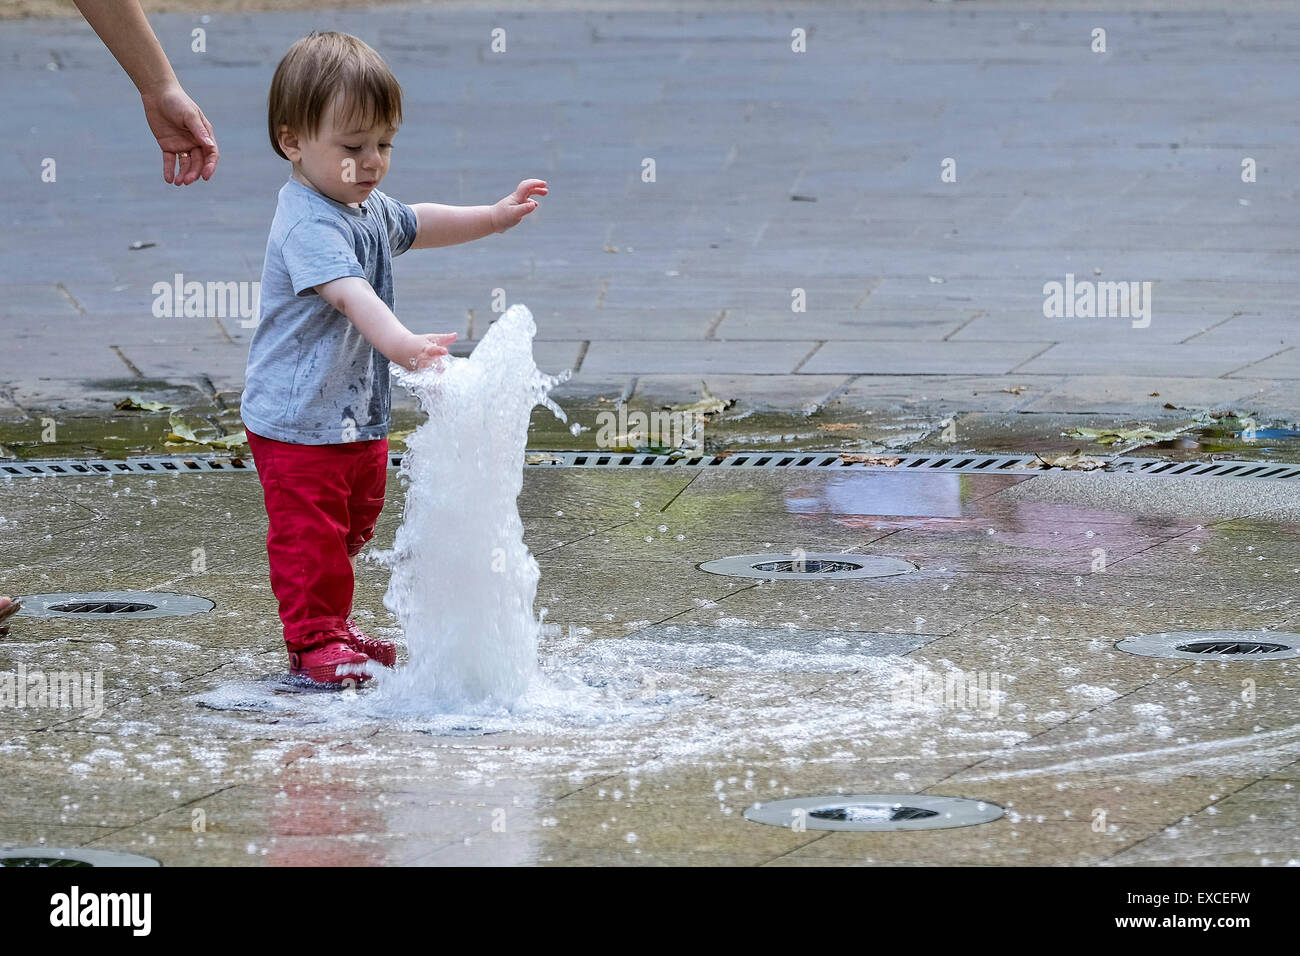 Russell Square Gardens, London, UK. 11th July, 2015.    A toddler escapes the heat in London today by cooling off - Stock Image